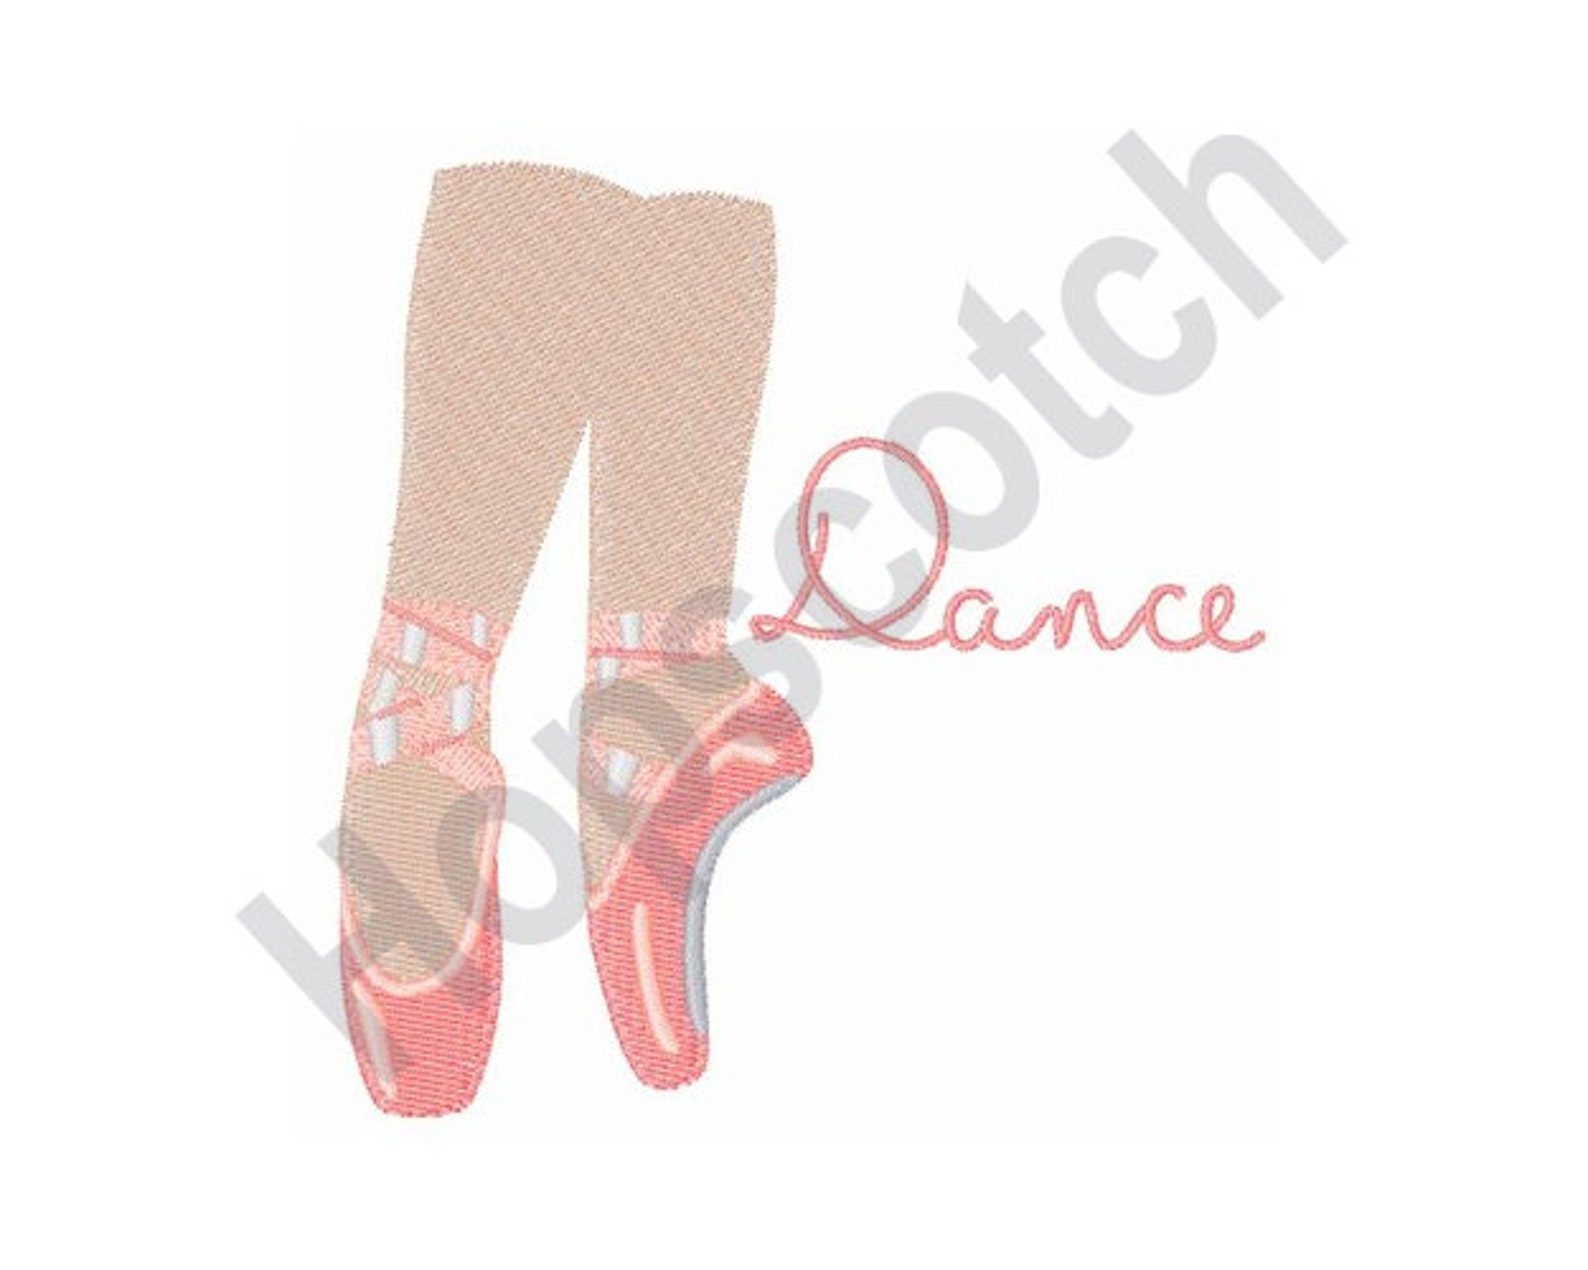 ballerina - dance, ballet - machine embroidery, embroidery designs, embroidery patterns, embroidery files